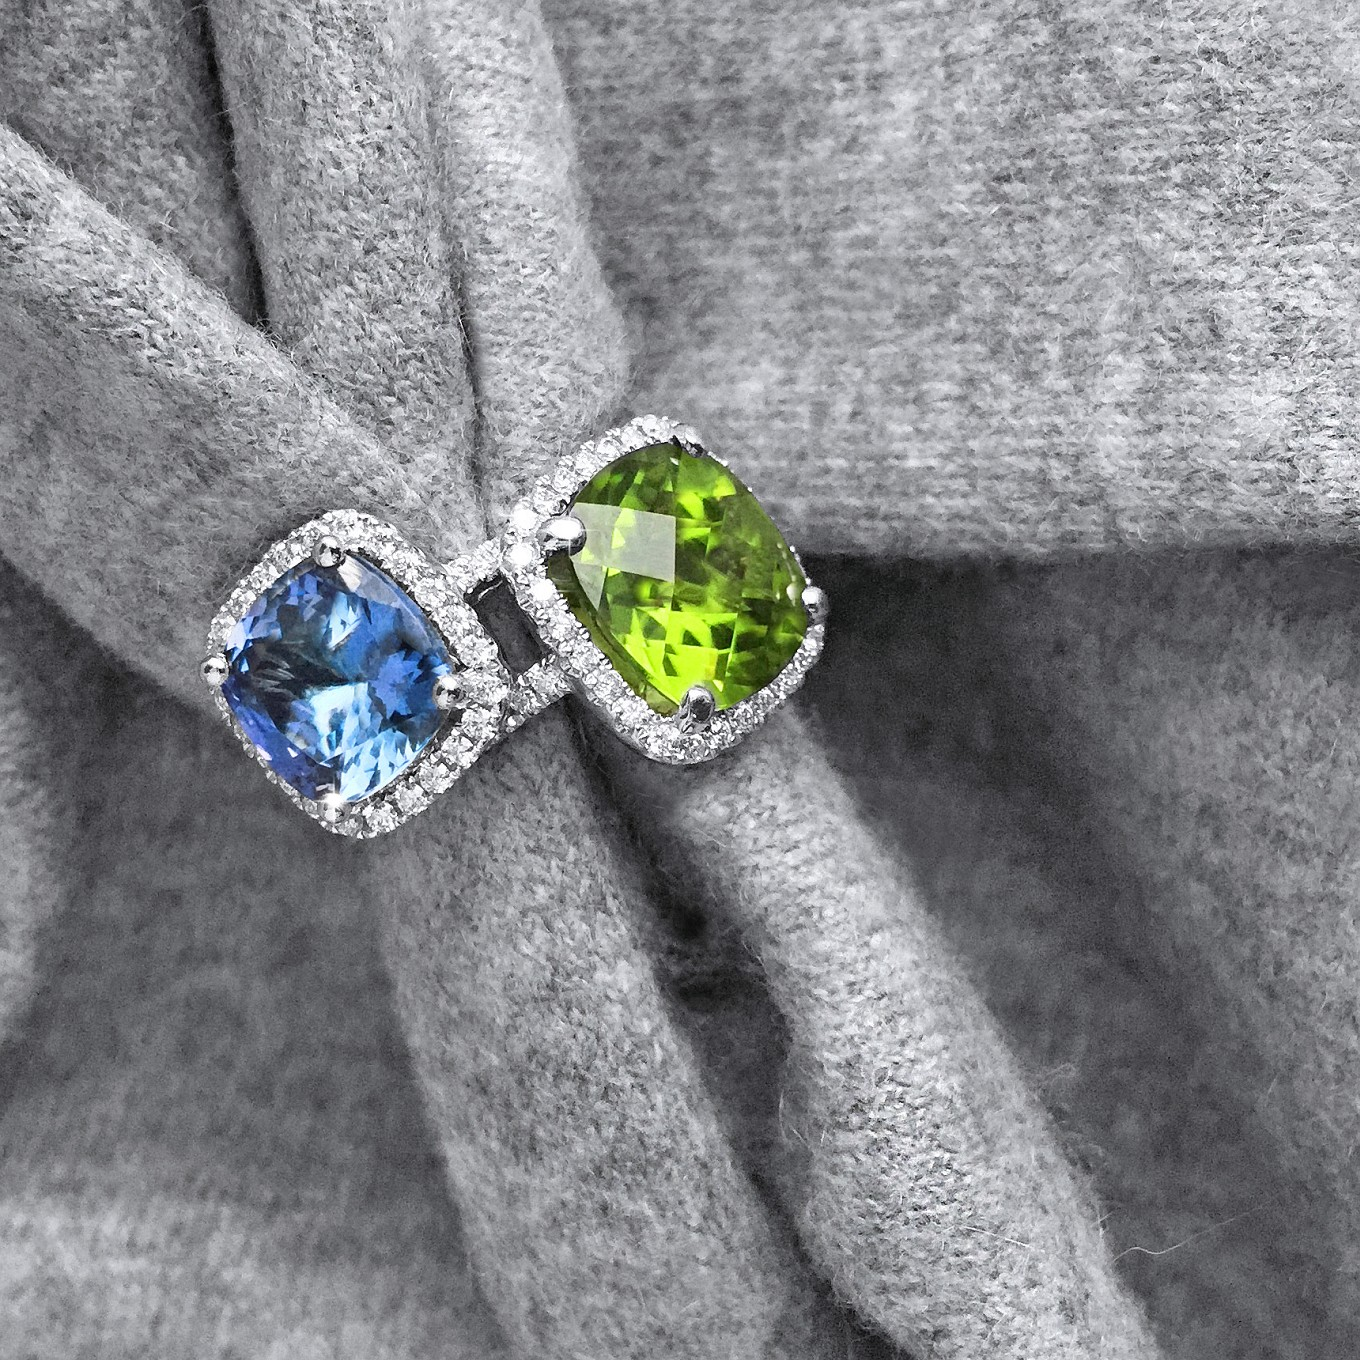 PERIDOT 5.15 CTS CUSHION CUT DIAMOND  0.39CTS FRAME RING IN WHITE GOLD TANZANITE 2.95 CTS CUSHION CUT DIAMOND 0.33CTS FRAME RING IN WHITE GOLD